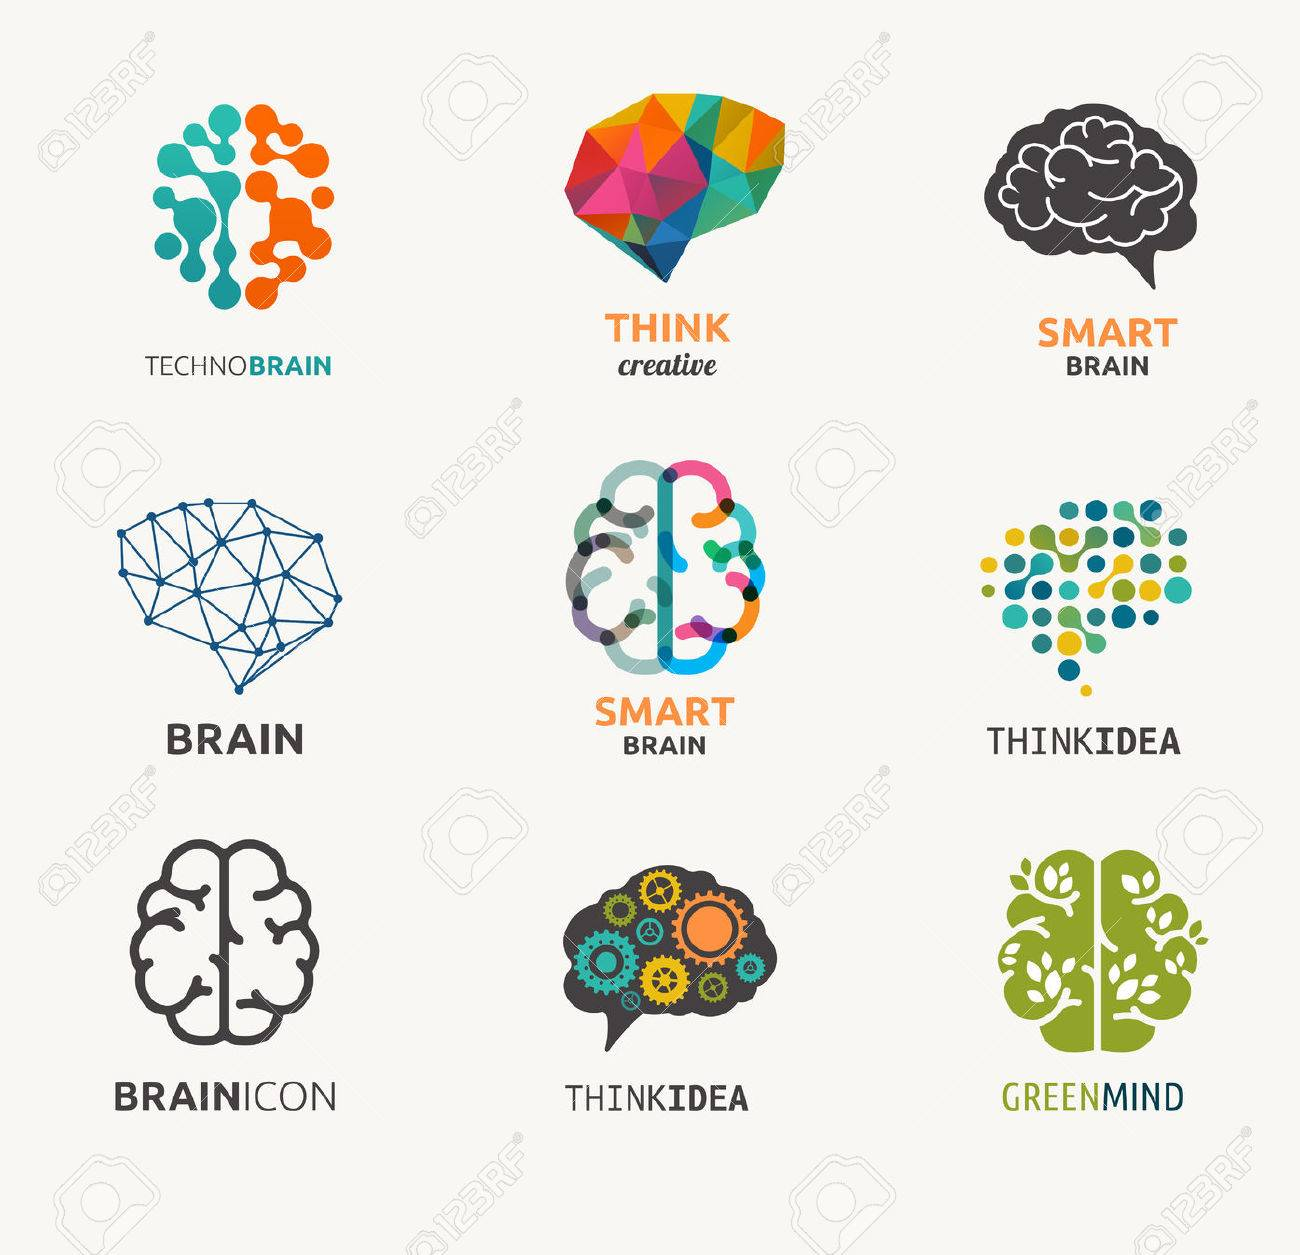 Collection of brain, creation, idea icons and elements - 37675210